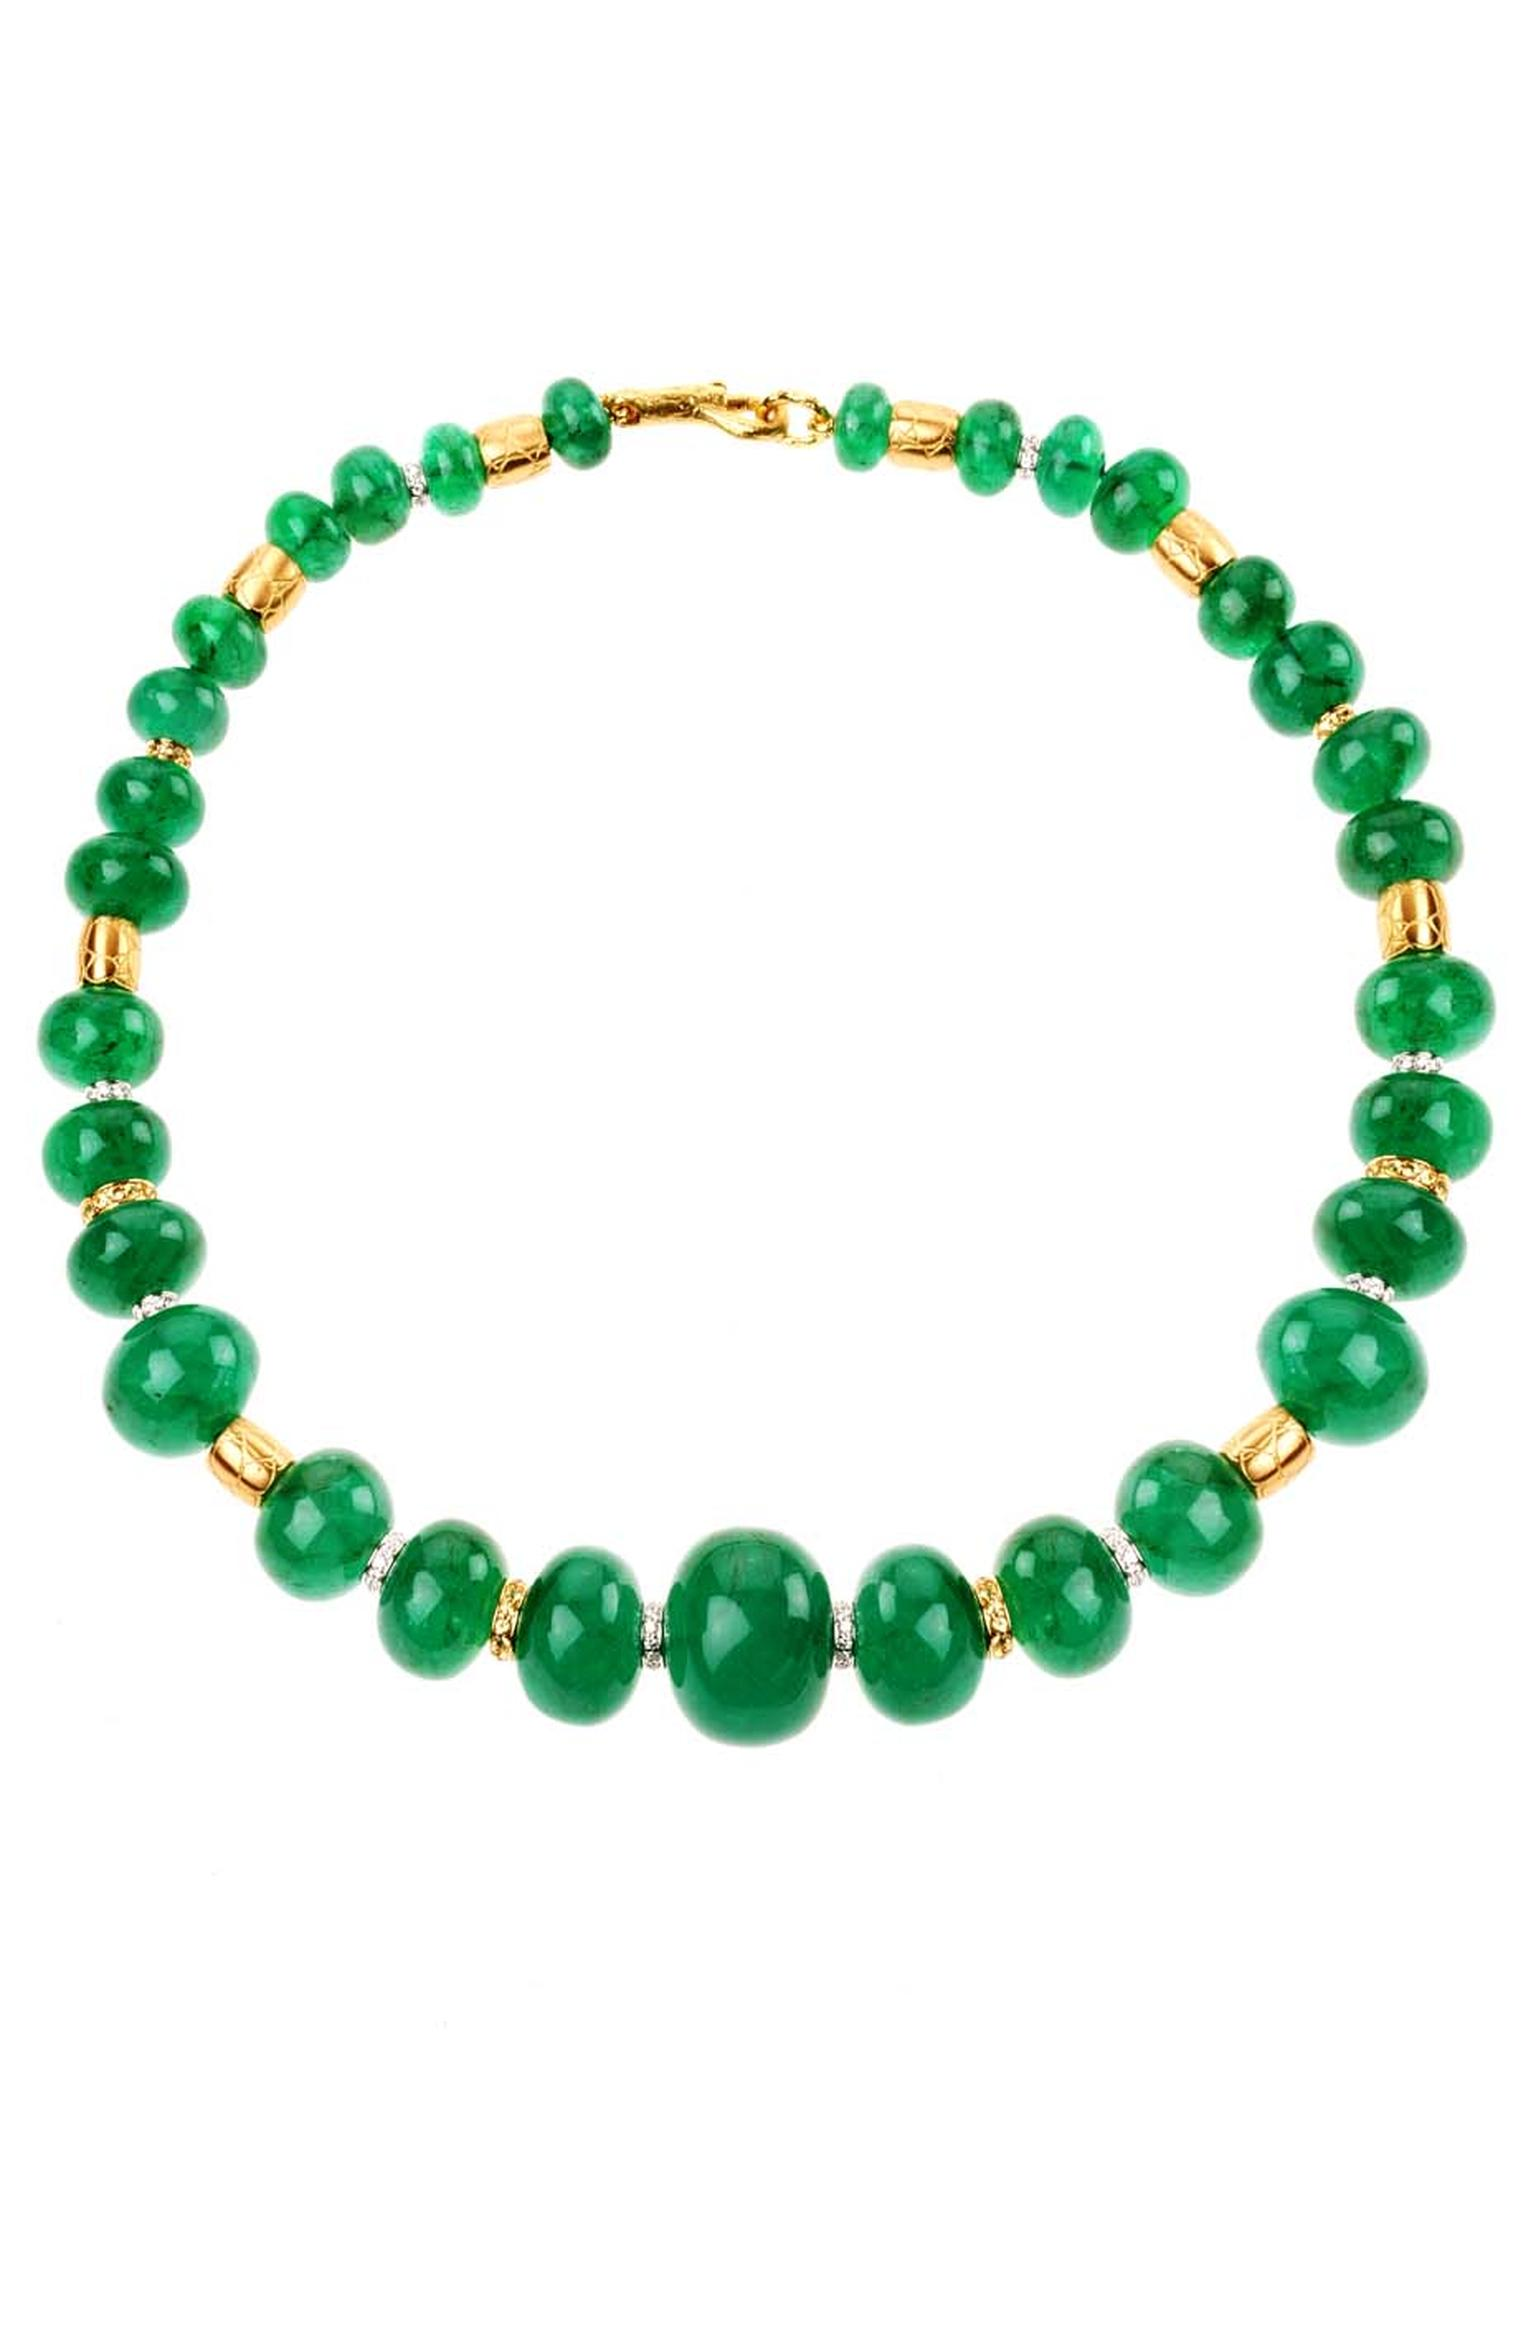 Elena C one-of-a-kind emerald necklace with gold coconut textured barrels and diamonds (56,950€).